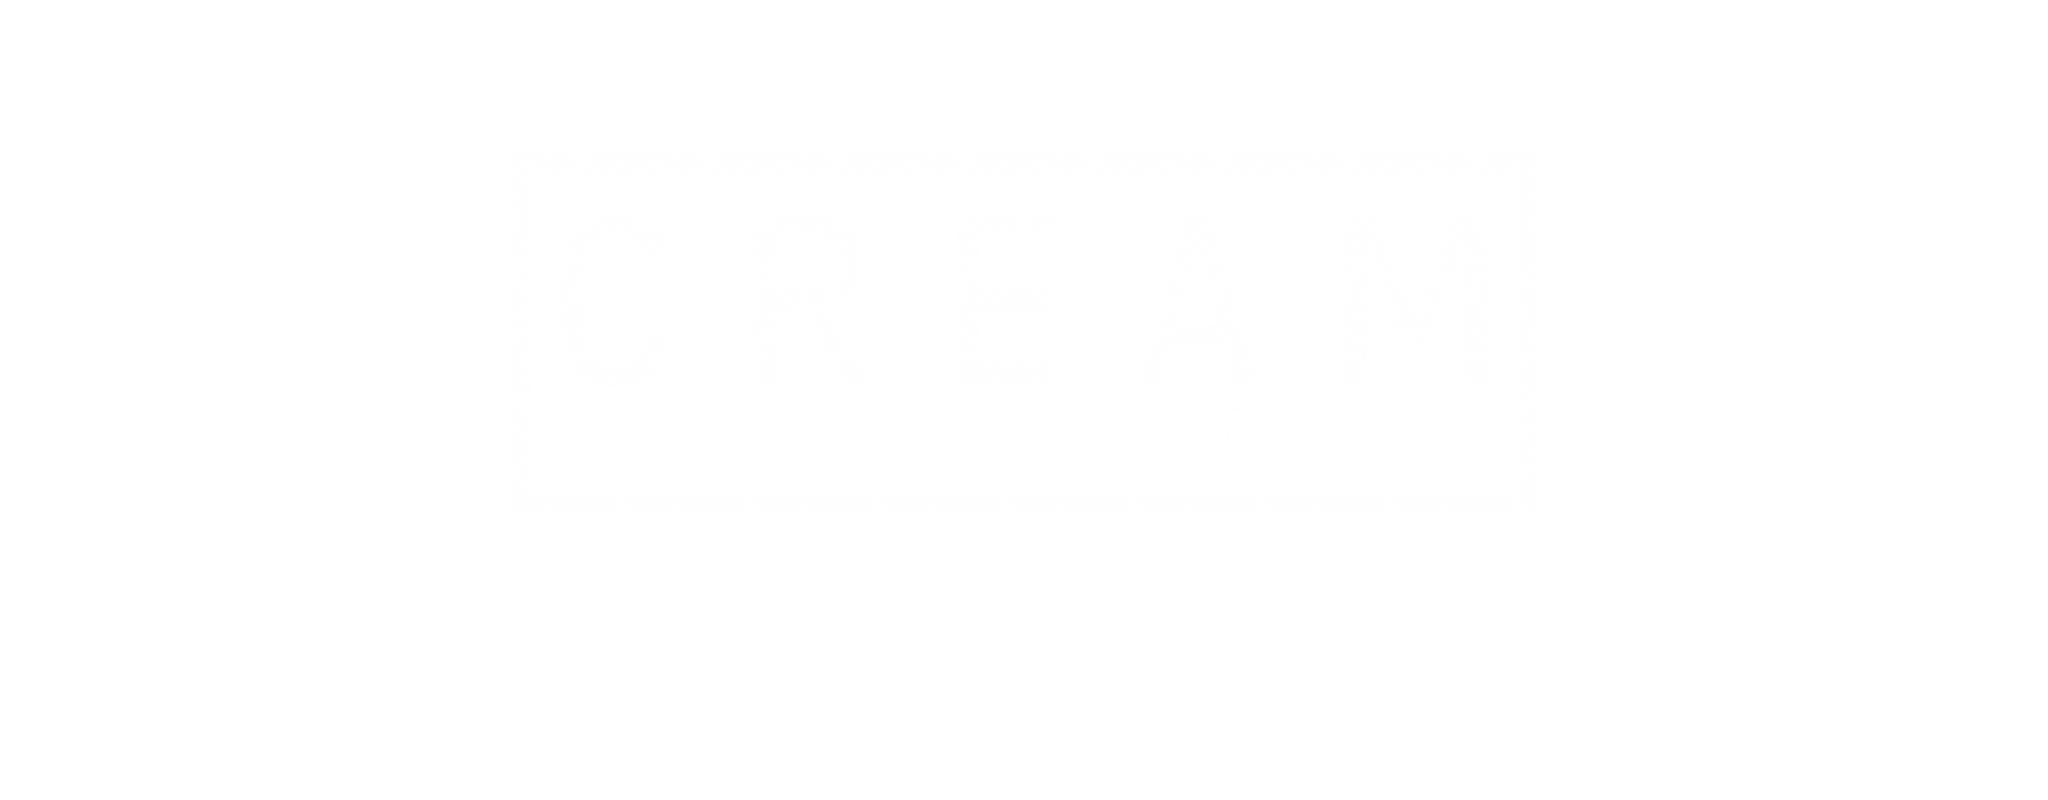 CREAM_BLENDS